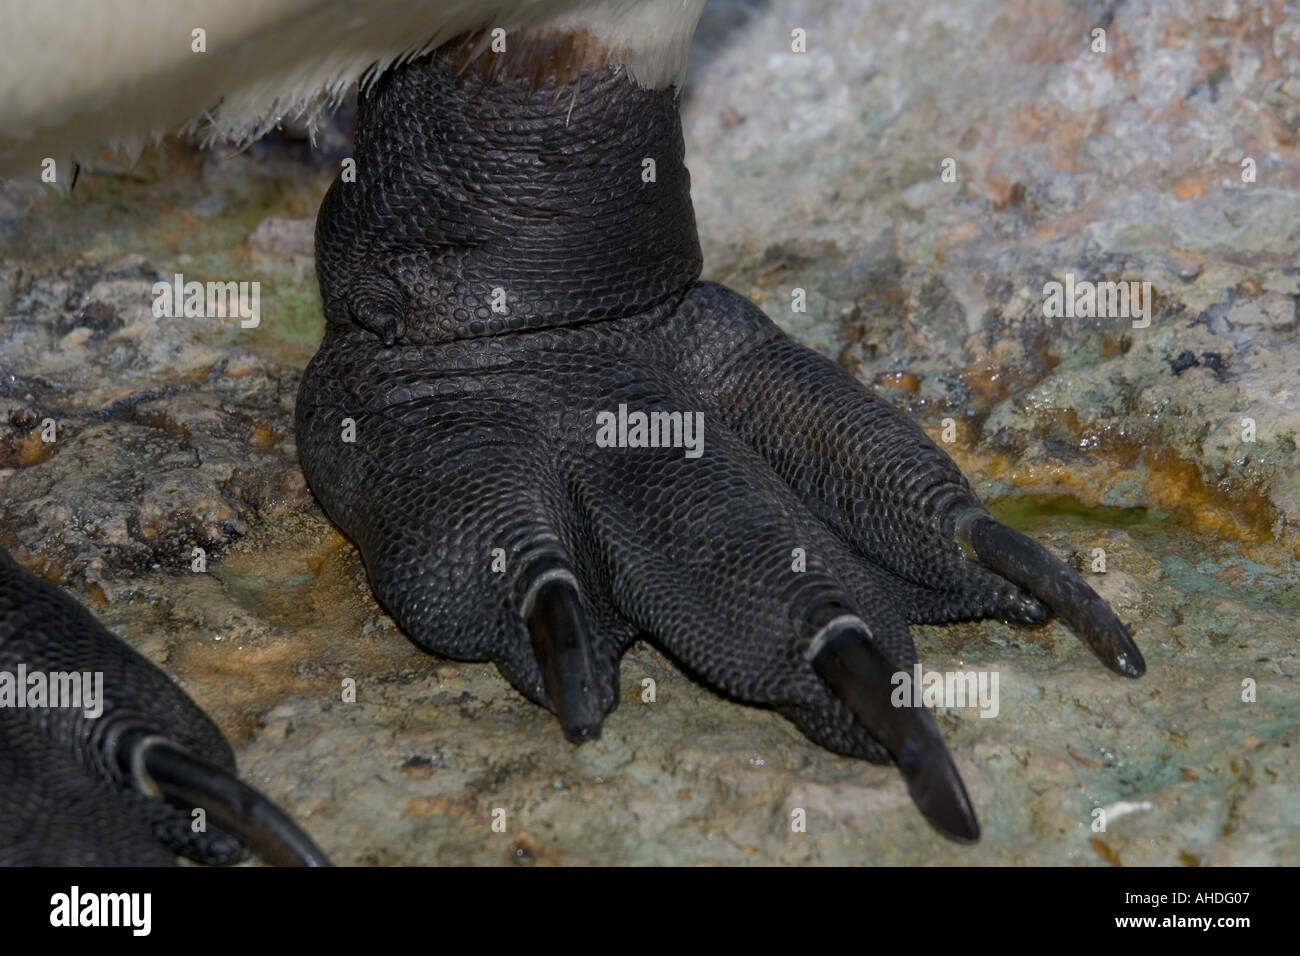 Foot of King penguin Aptenodytes patagonicus Birdland Bourton on the Water Cotswolds UK - Stock Image